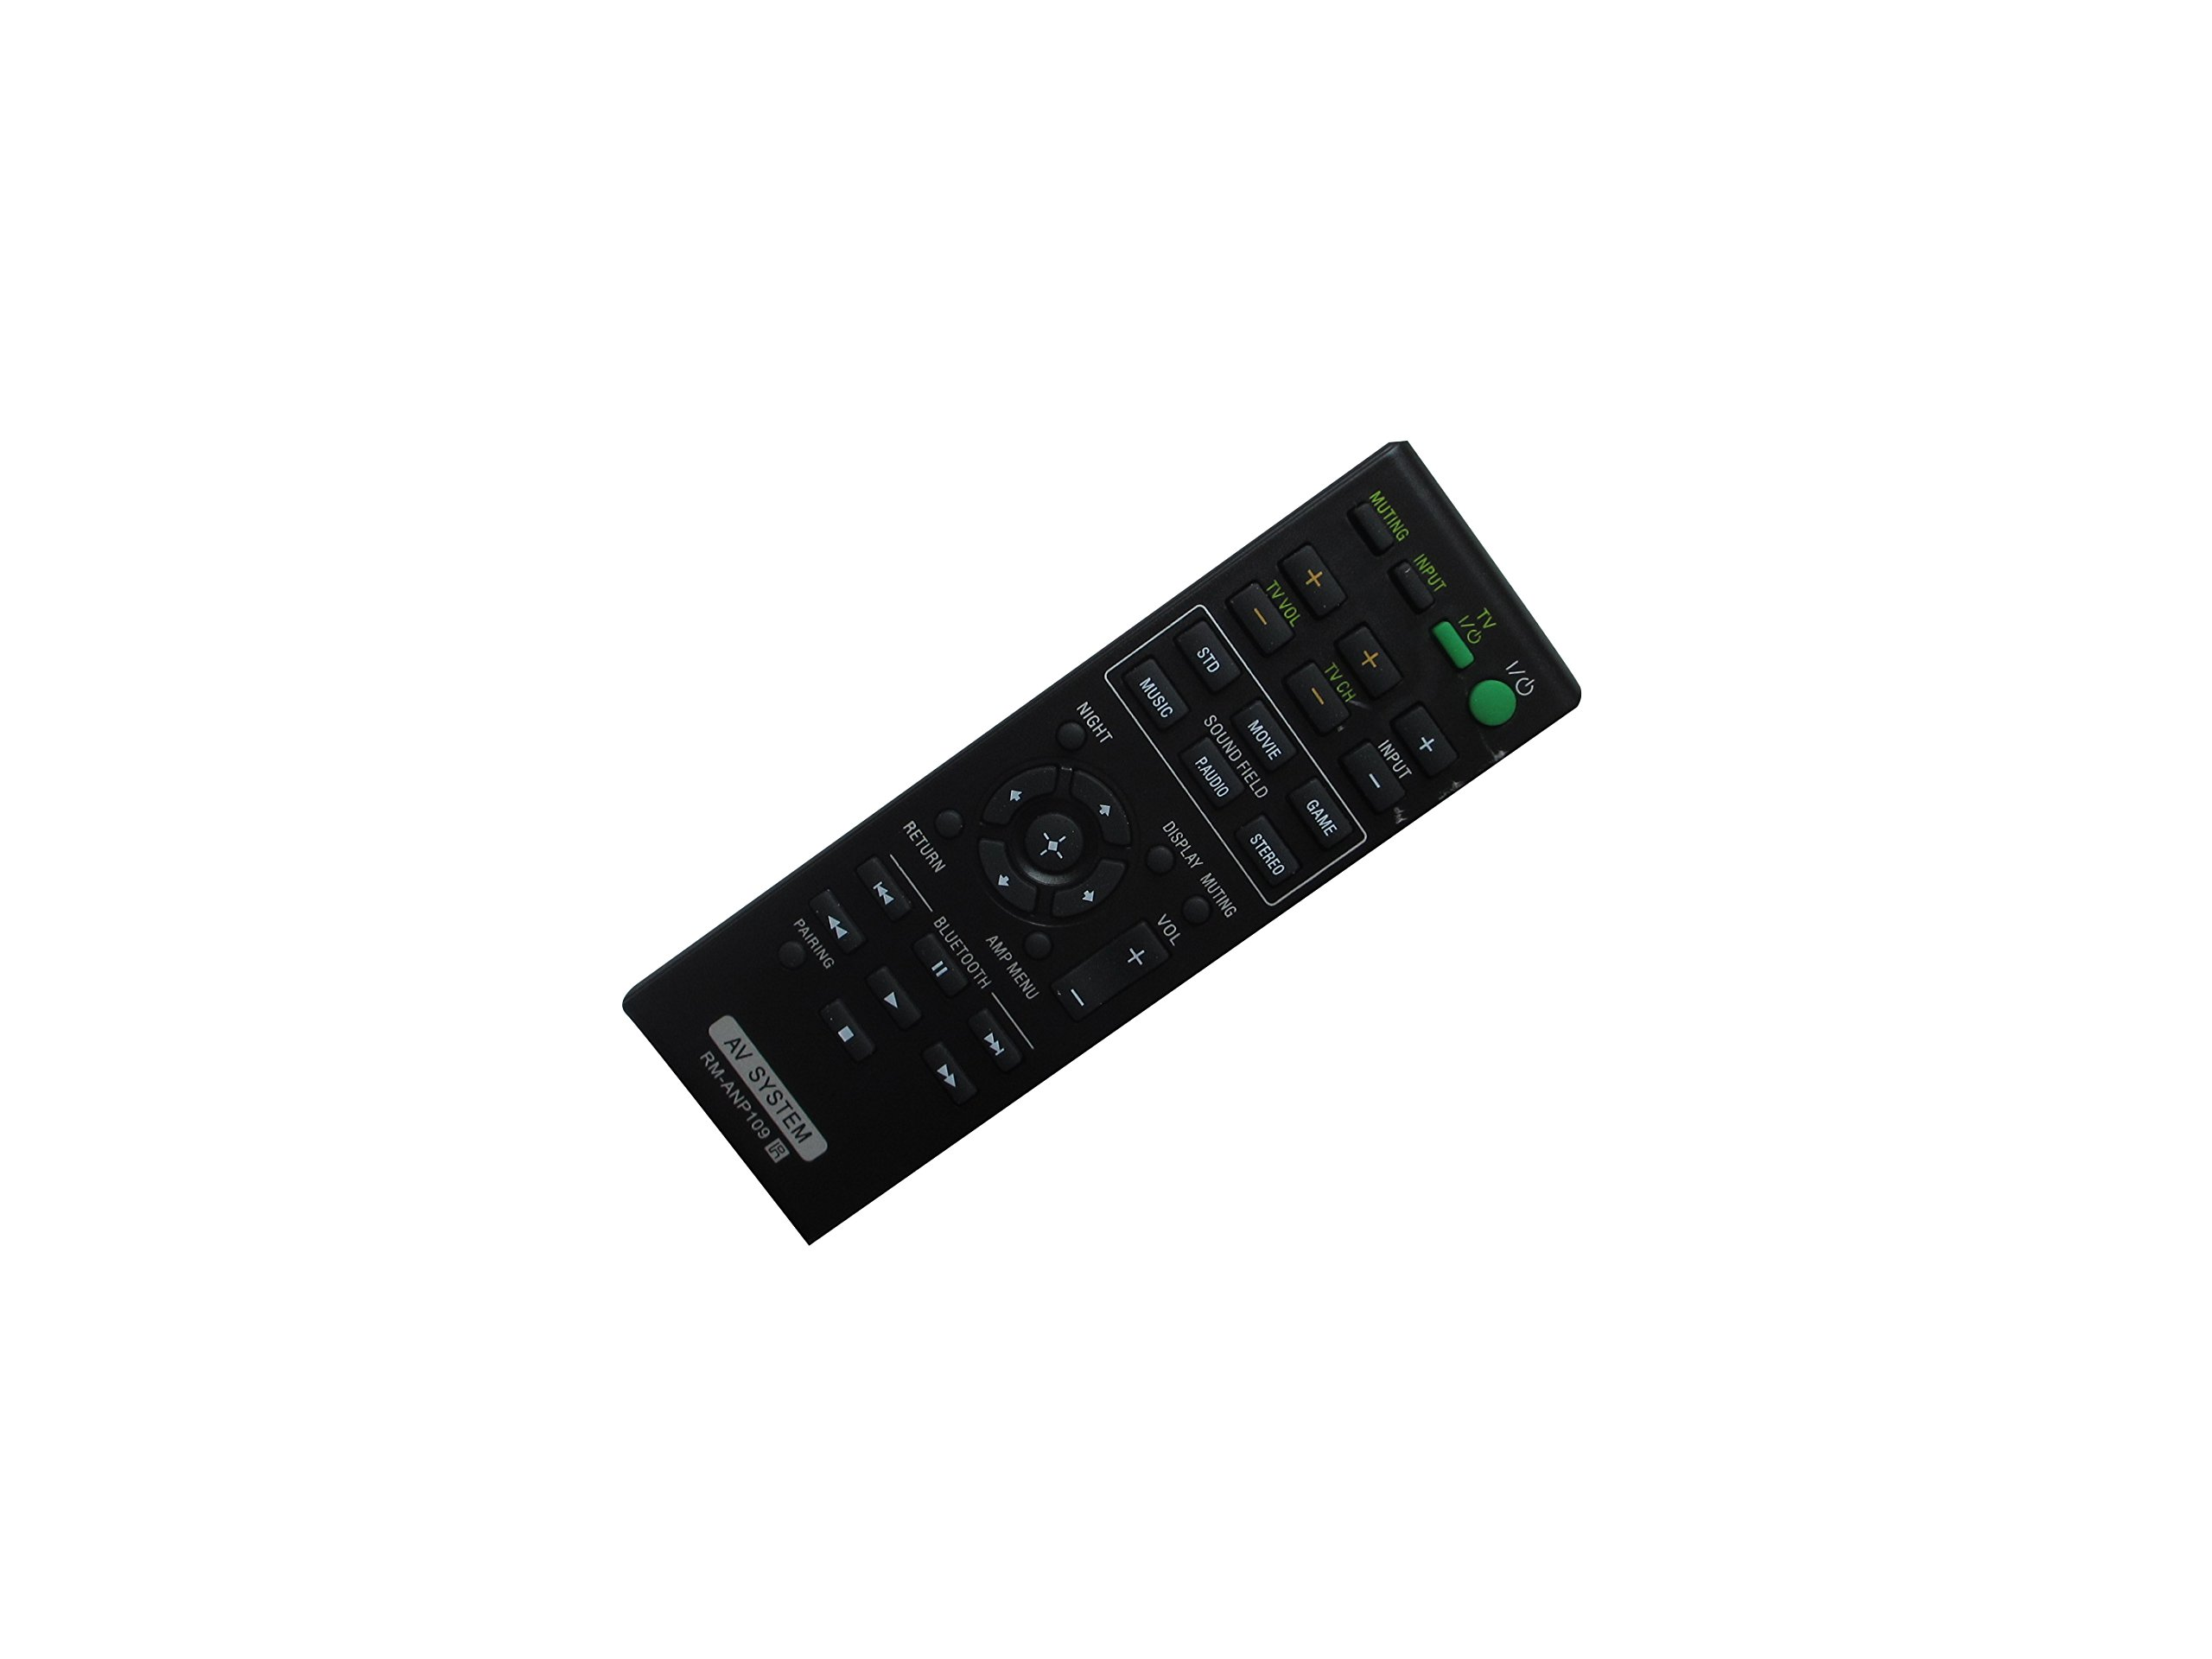 Replacement Remote Control fit for Sony SA-CT660C HT-CT260H 2.1 Channel surround Sound Bar with Wireless Subwoofer Home Theater System by HCDZ